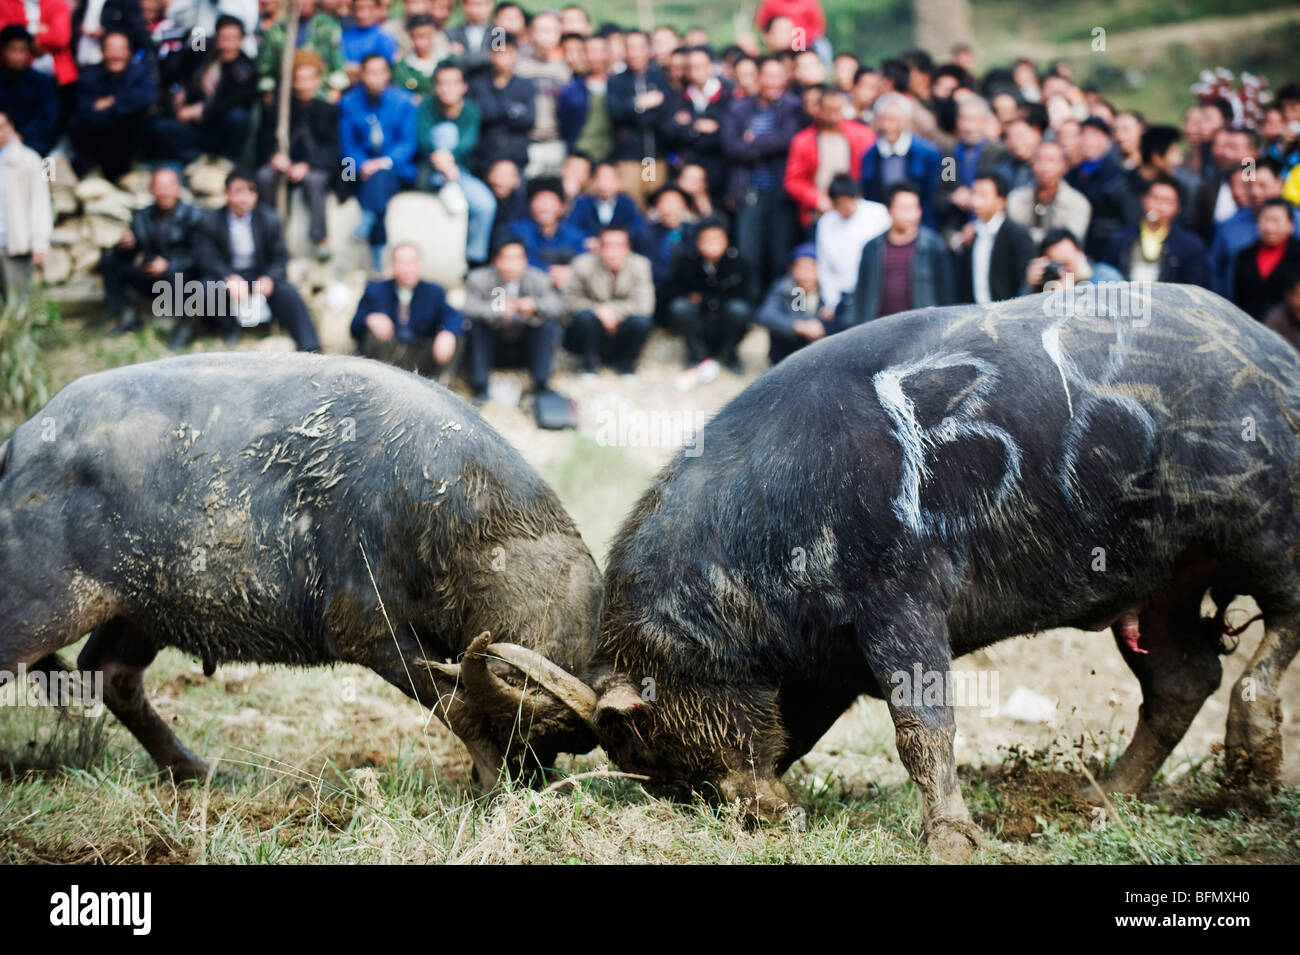 festival of buffalo fights World news for students of english  vietnam's annual water buffalo fighting festival resumed after a  lock horns (fight violently and literally fight by .